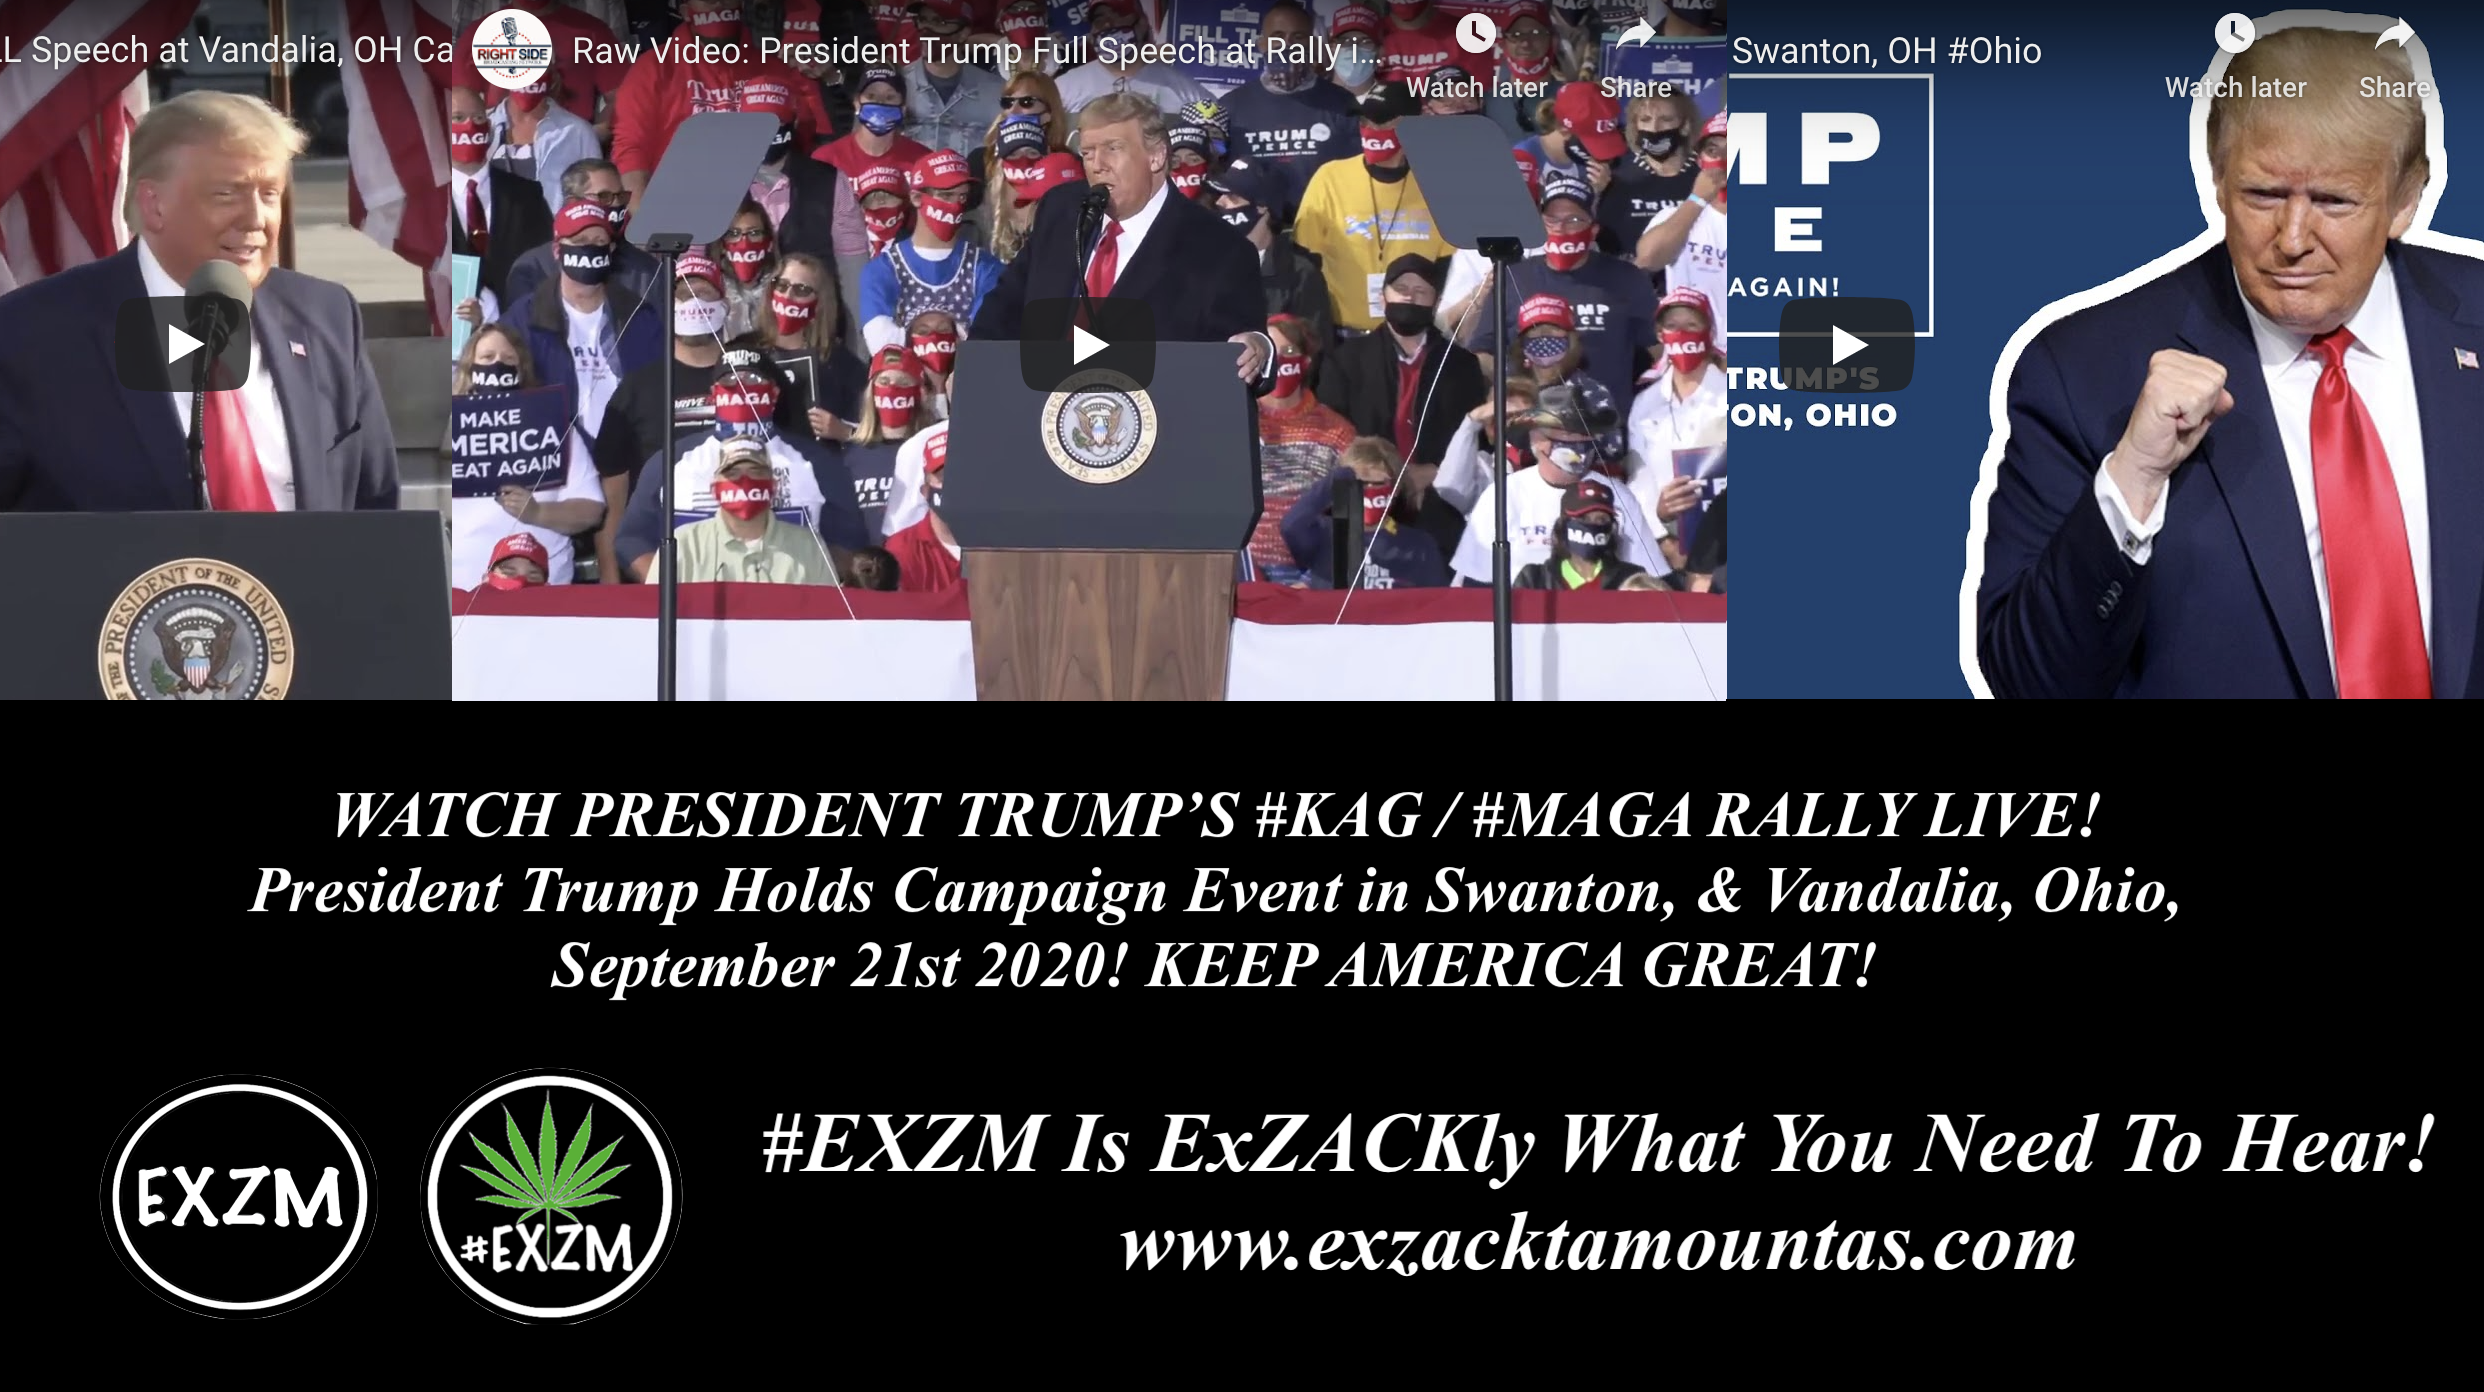 President Donald Trump KAG MAGA Rally Swanton Vandalia Ohio EXZM September 21st 2020